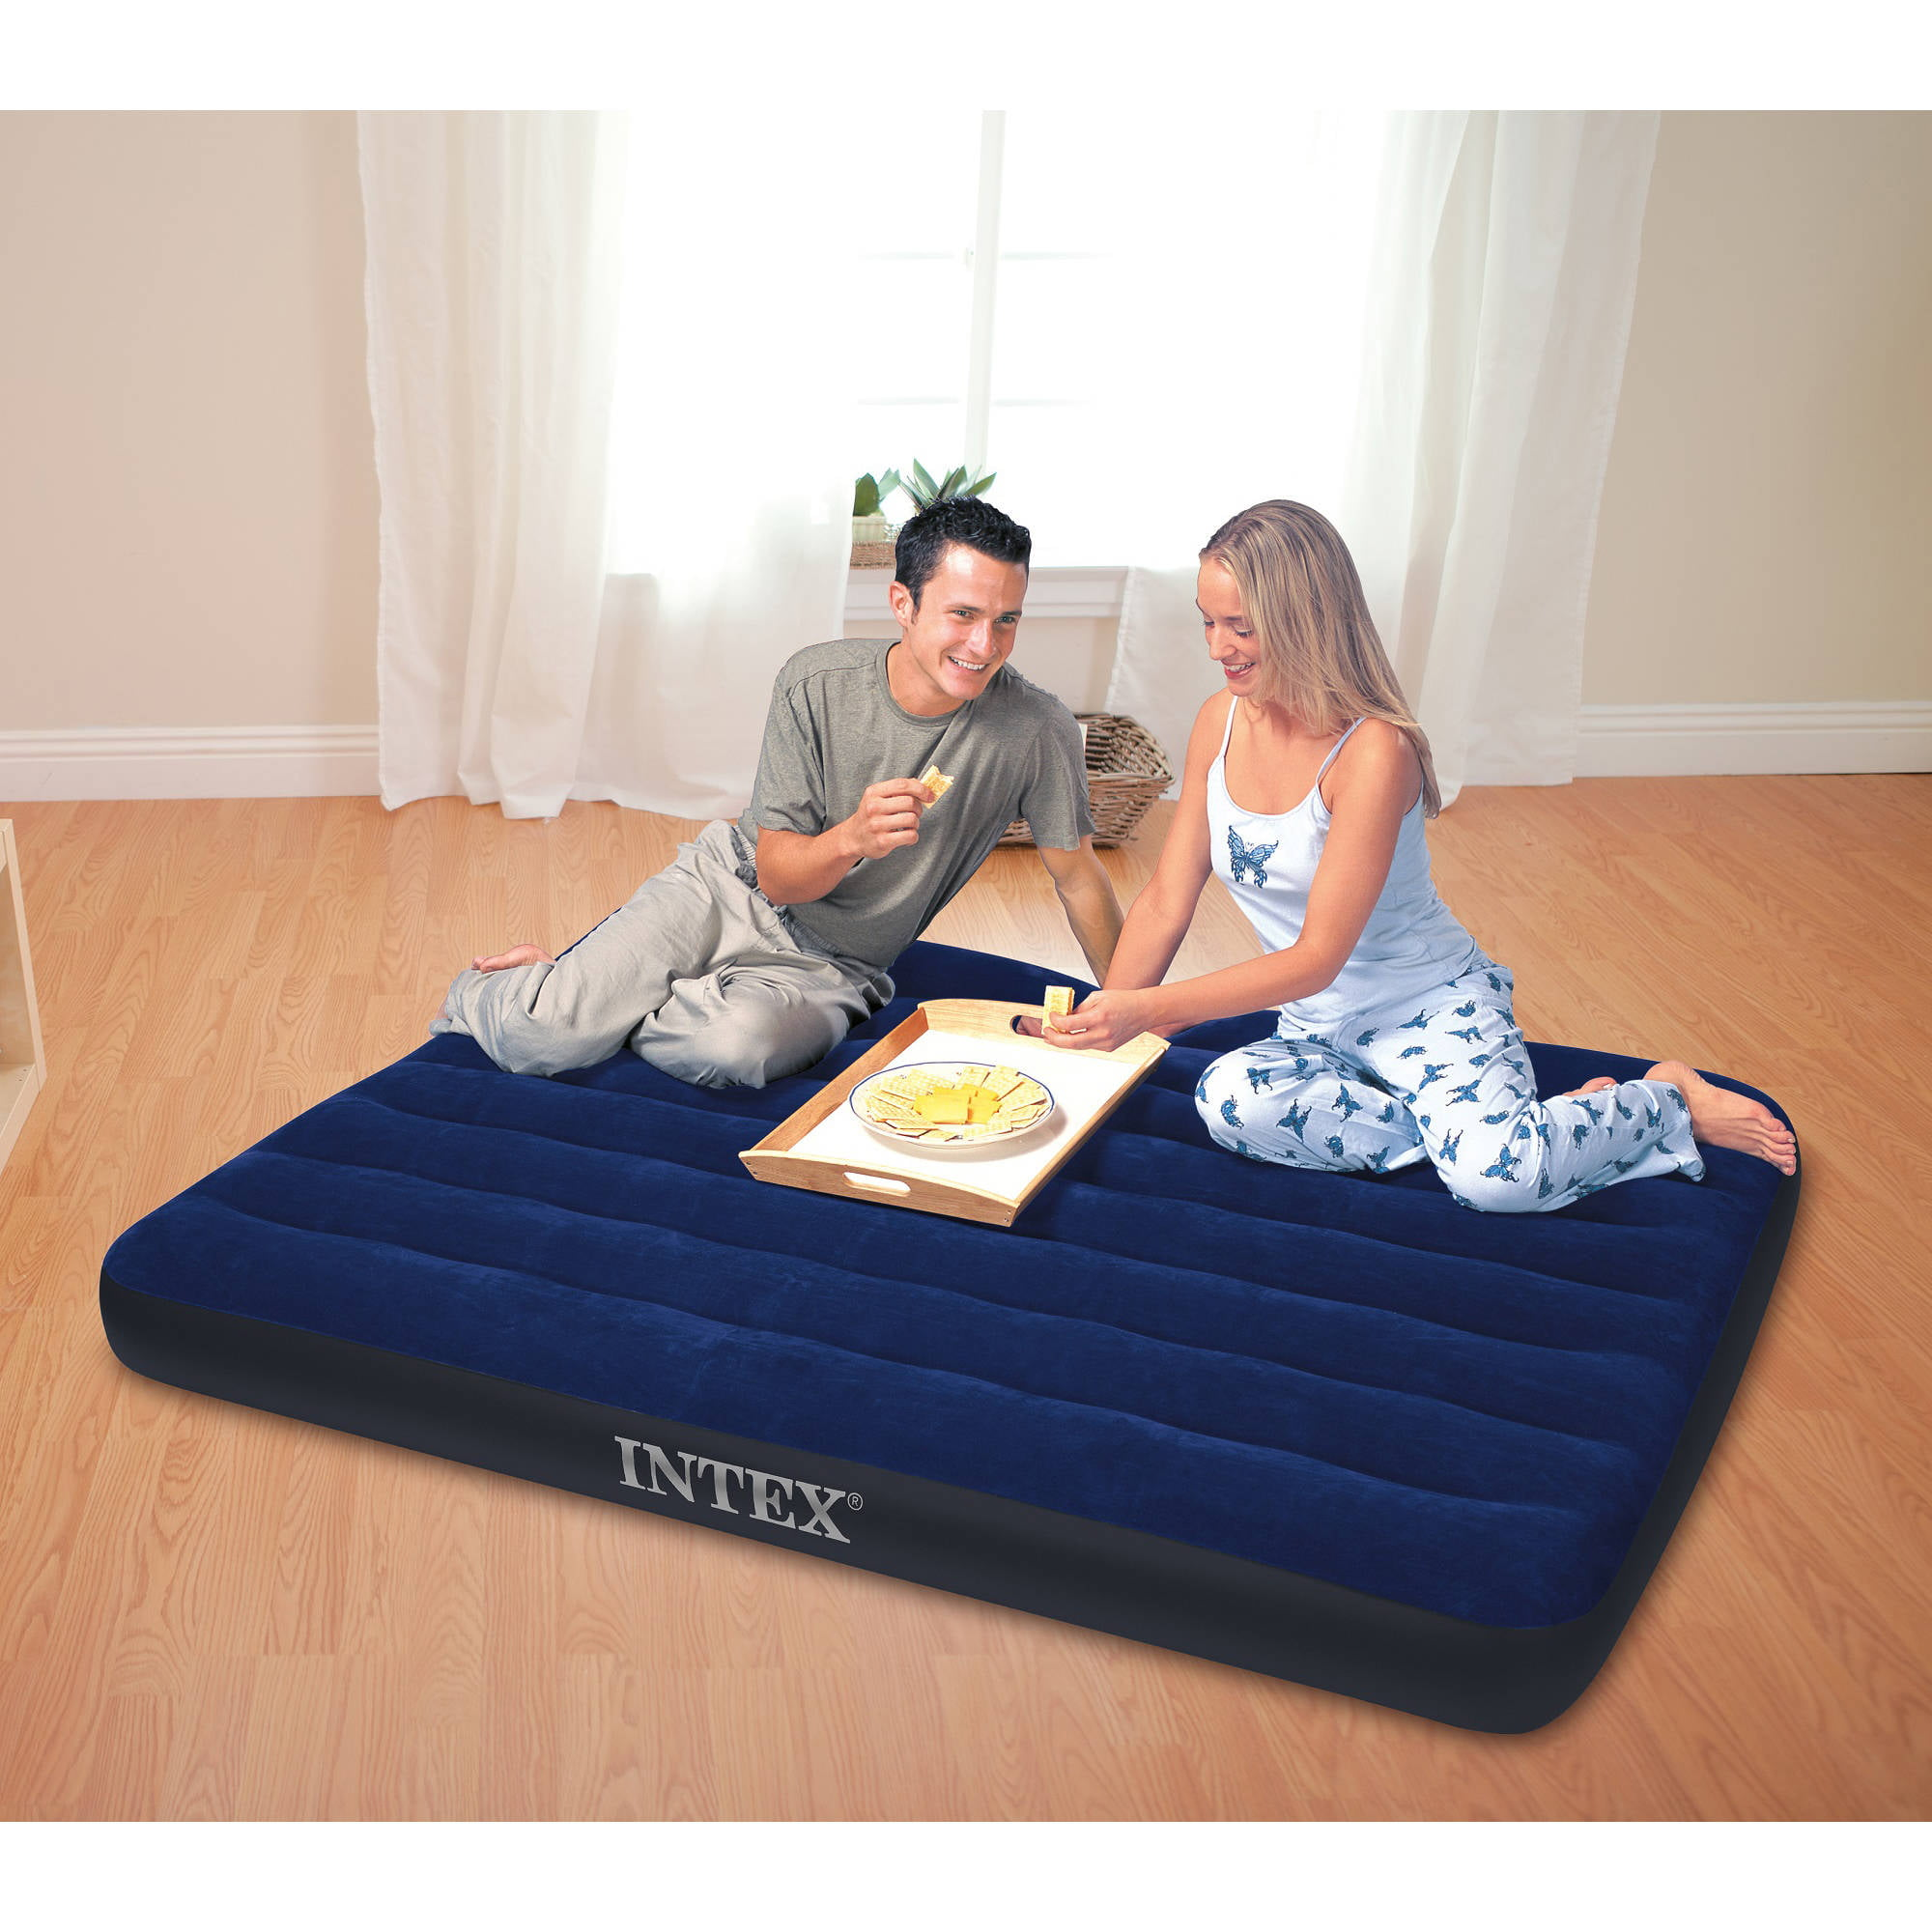 Intex 16 5 Durabeam Deluxe Pillow Rest Airbed Mattress With Built In Pump Multiple Sizes Com